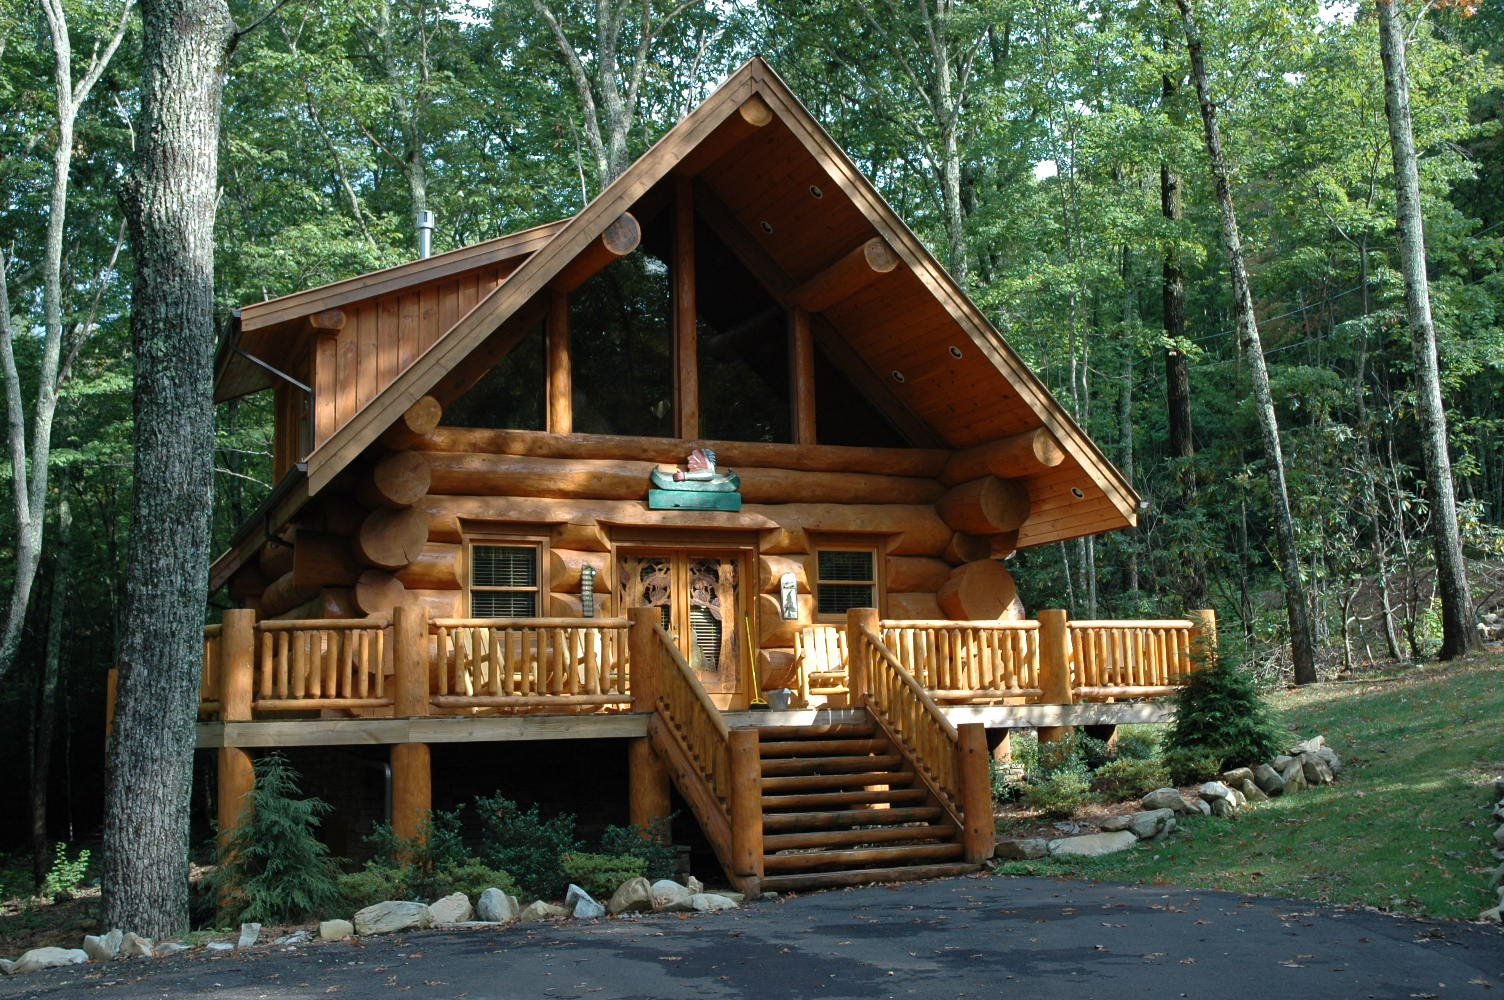 Gatlinburg cabin rentals history of log cabins in the for House log